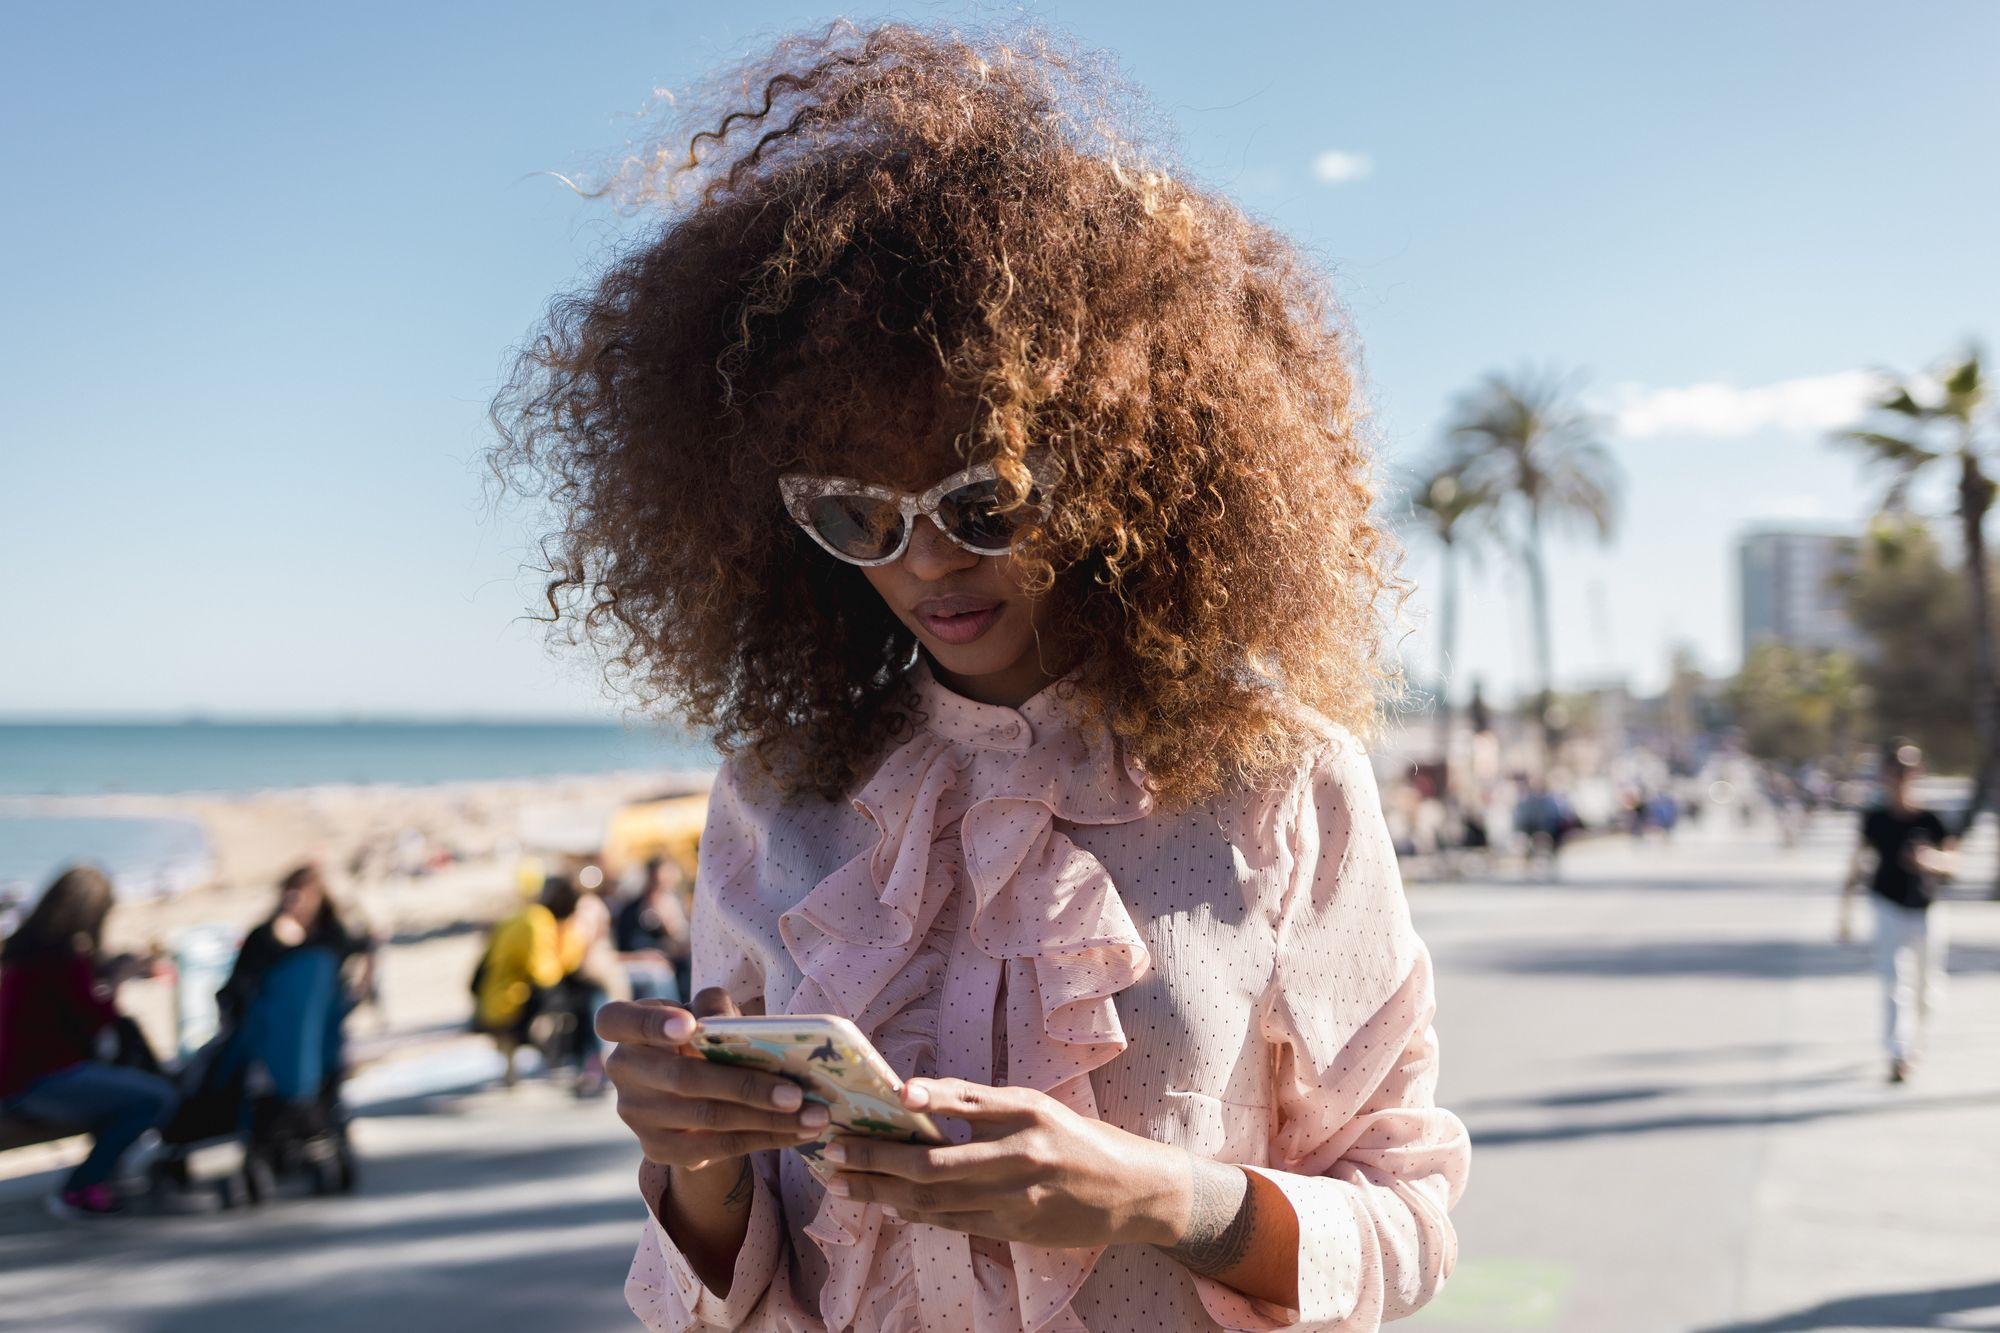 Overhaul Your SMS Marketing With These 4 Genius Tips